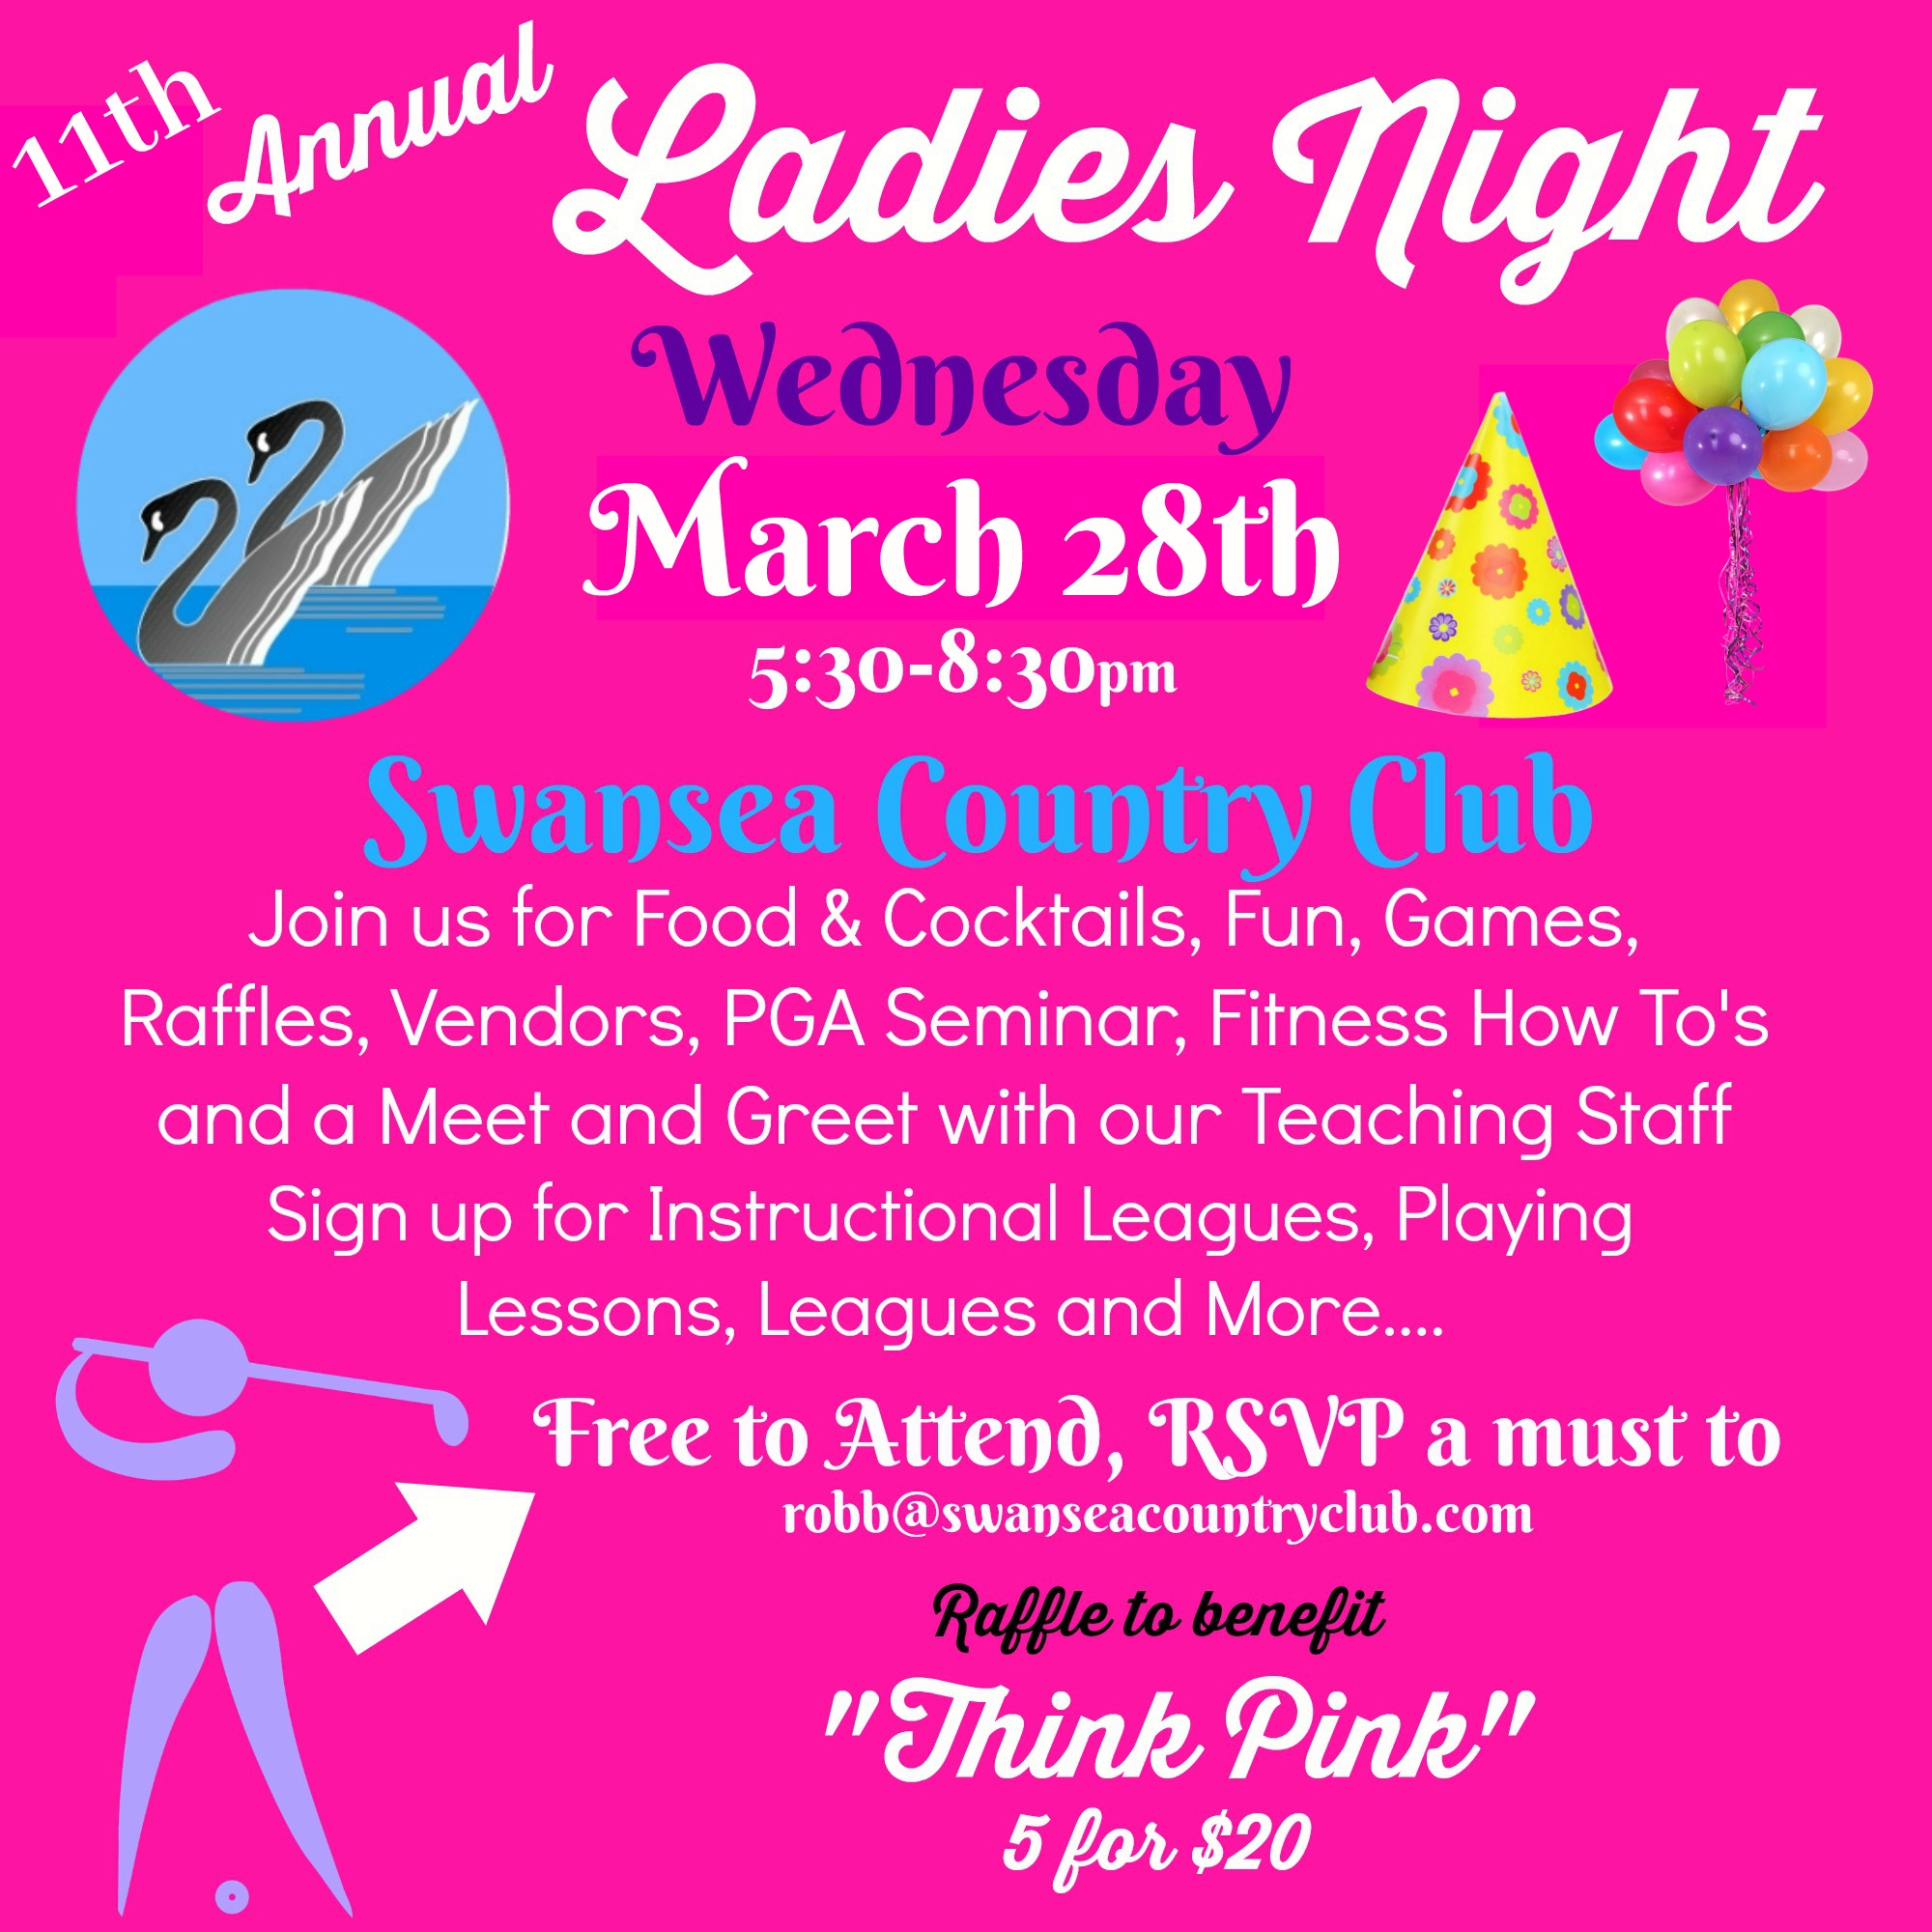 11th annual ladies night